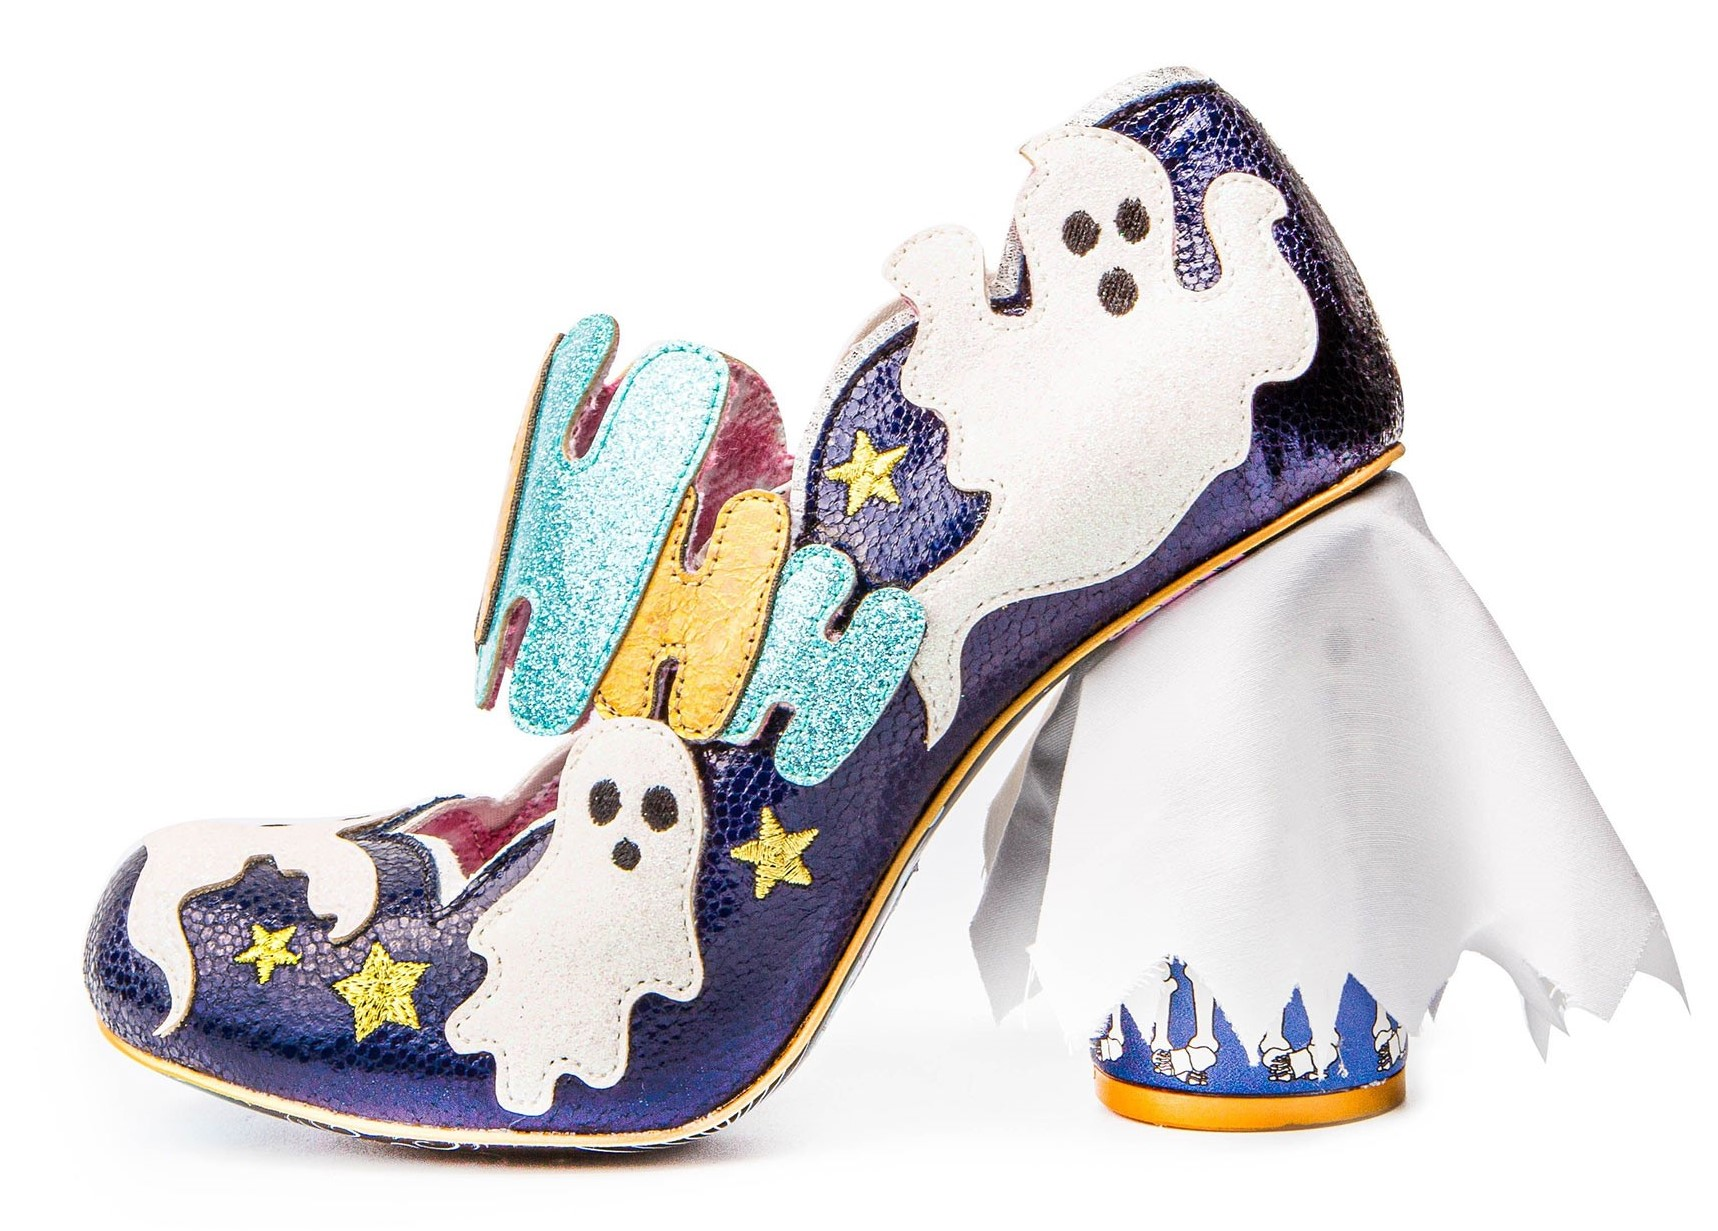 These Halloween boots and high-heel shoes are too wacky to be spooky 16